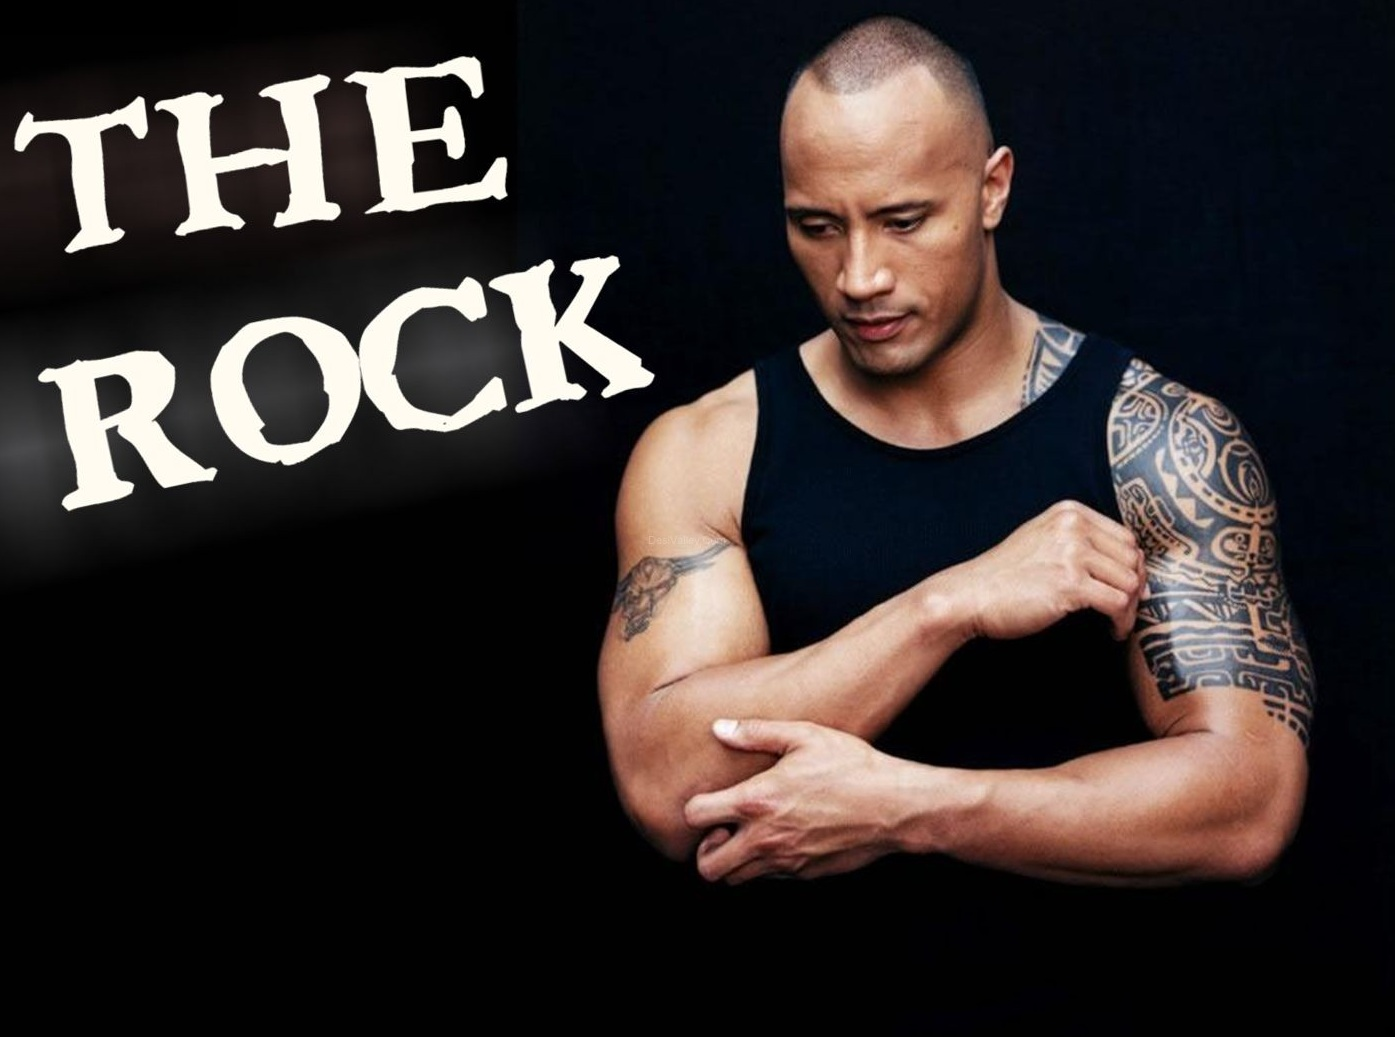 The Rock New HD Wallpapers 2012-2013 ~ All About HD Wallpapers